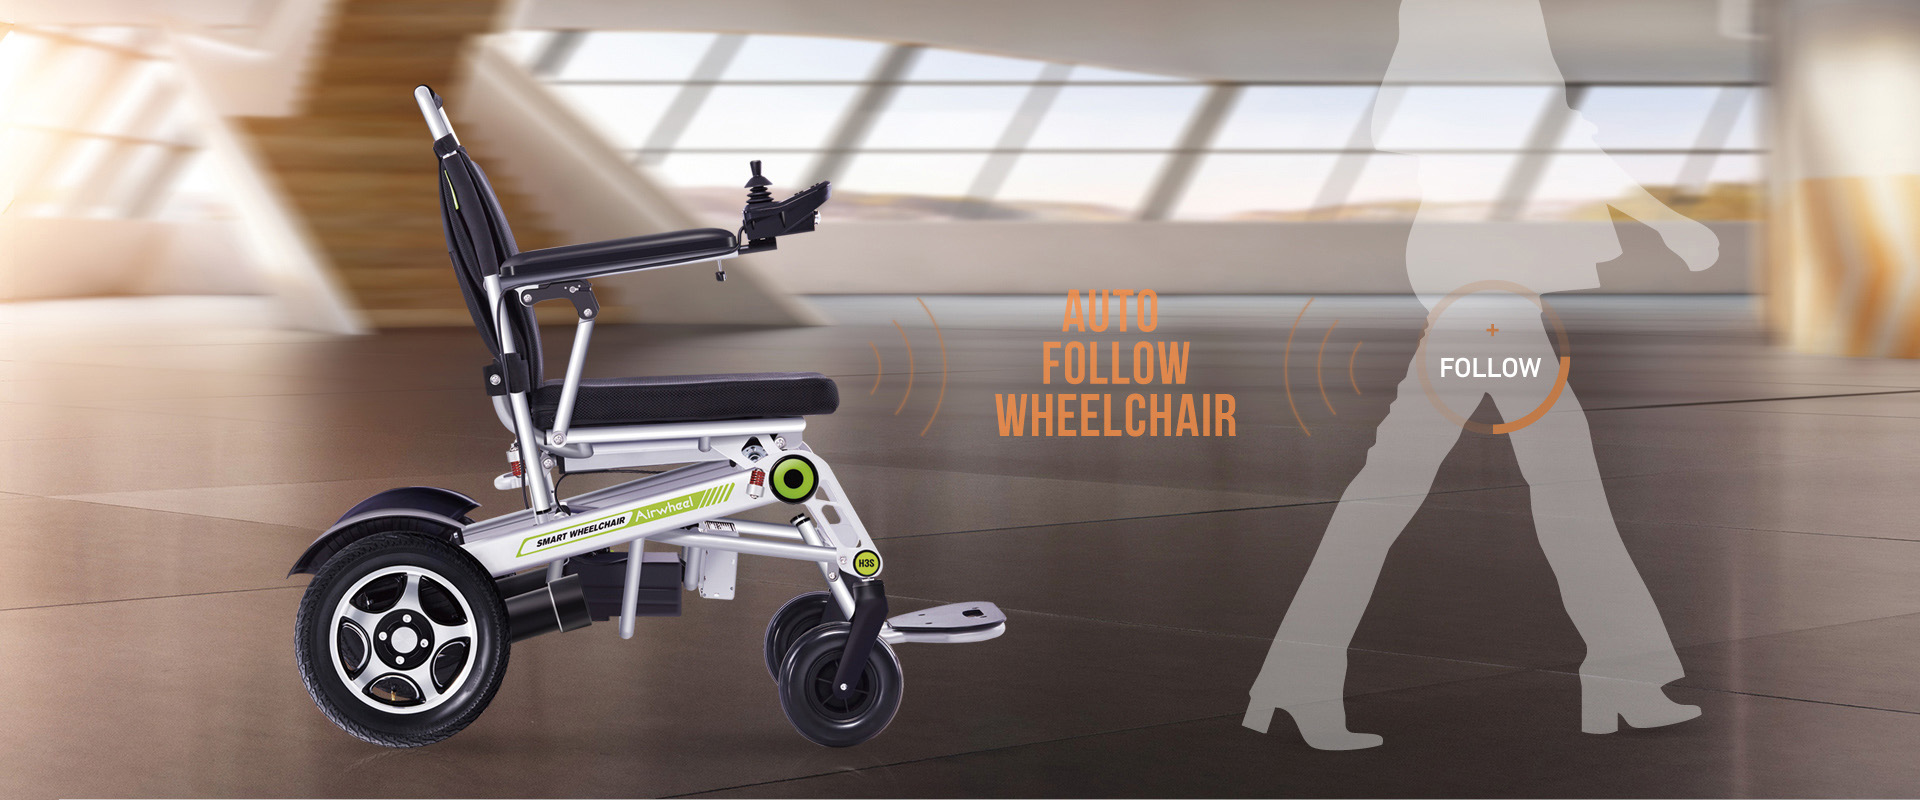 Airwheel H3S smart folding wheelchair